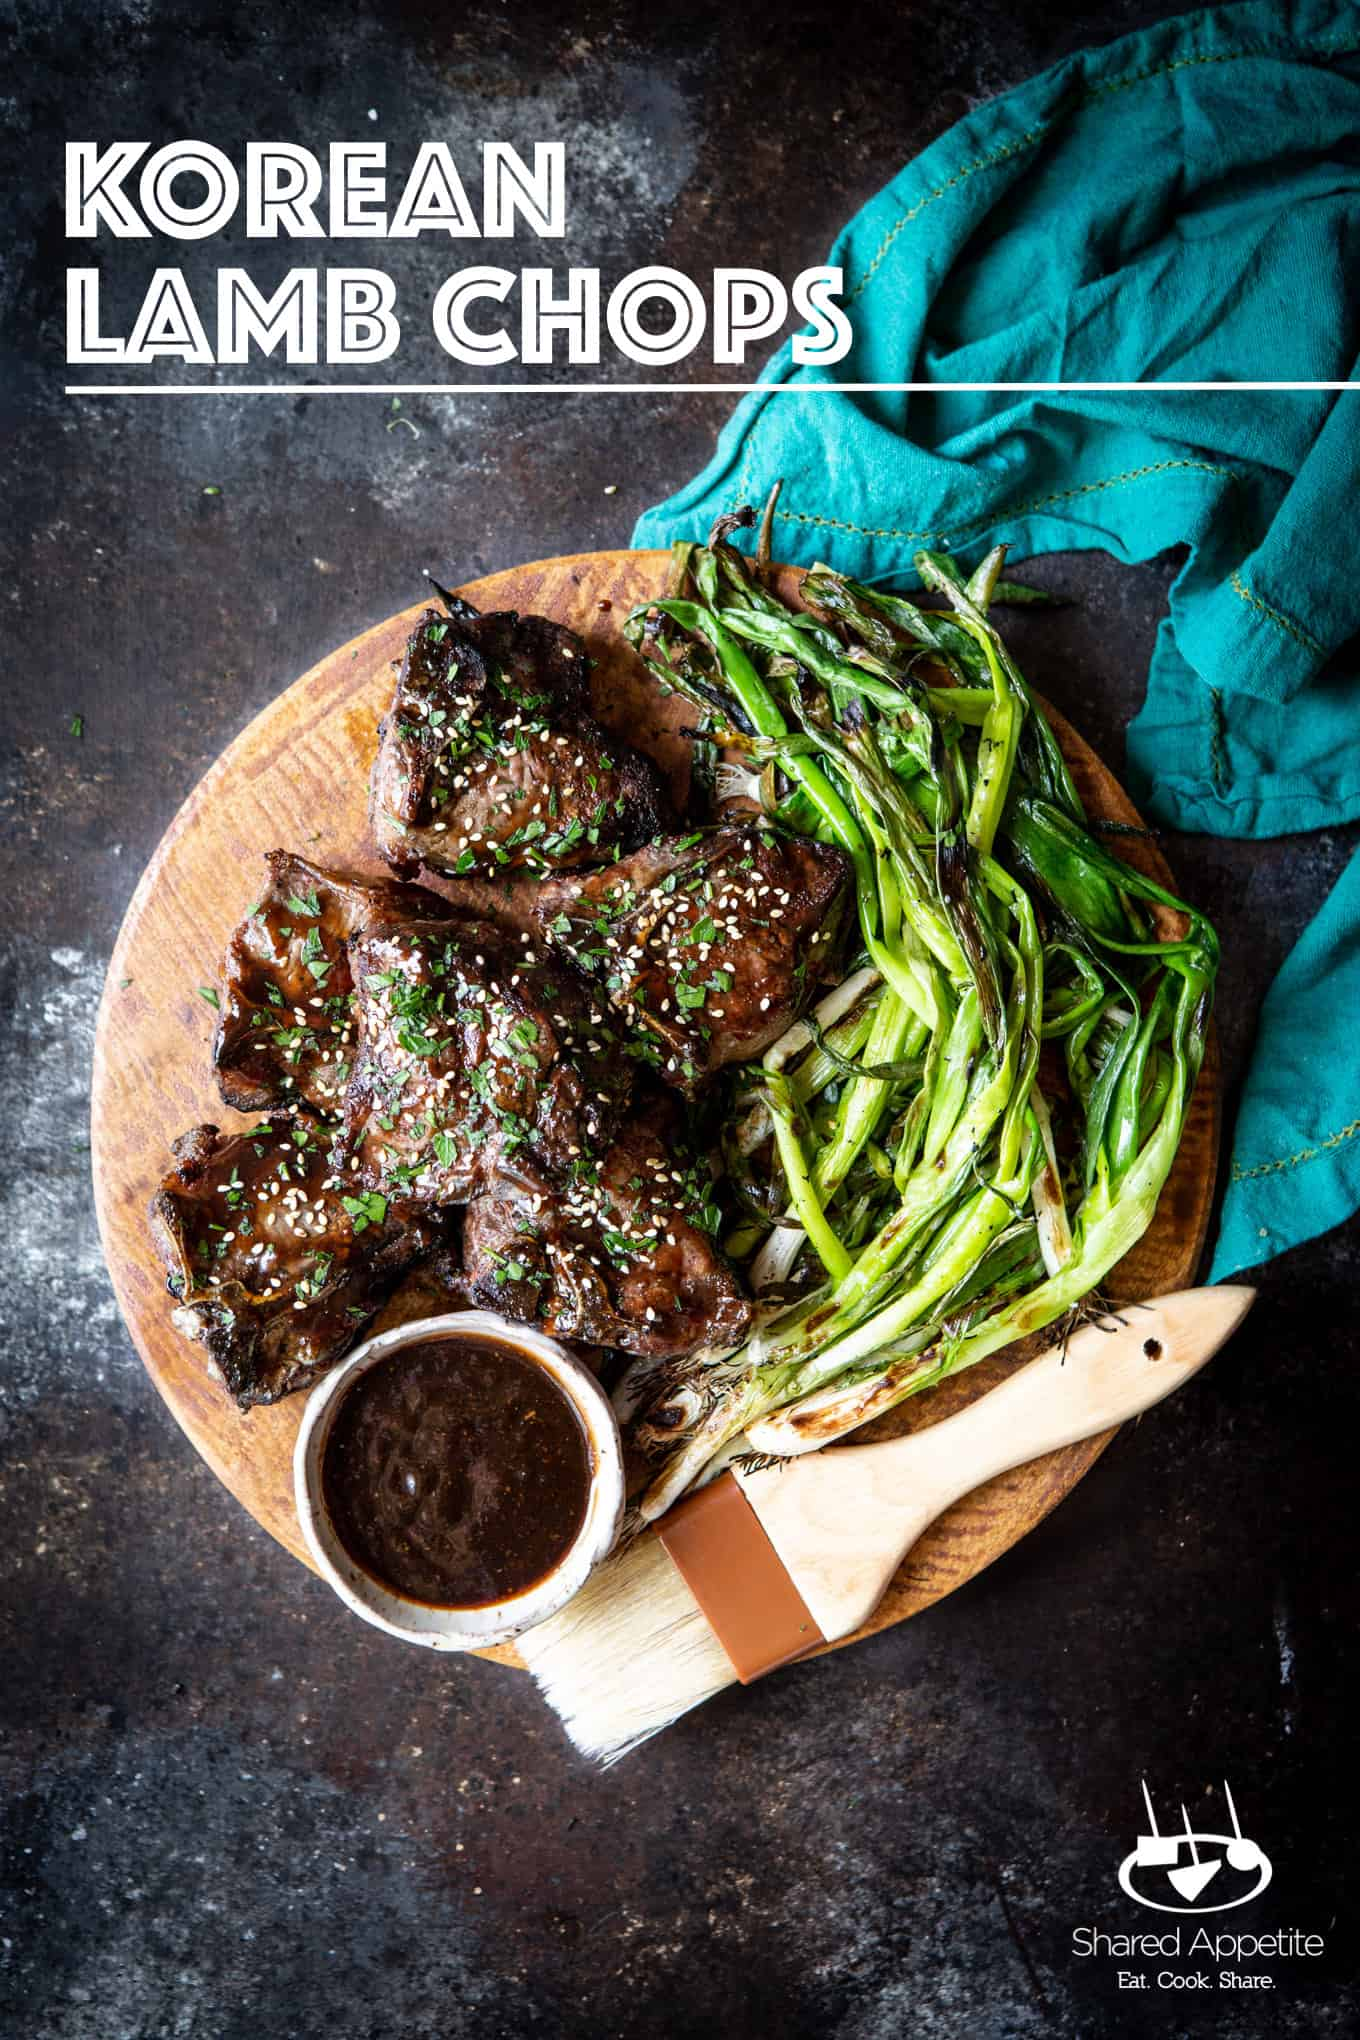 Korean Lamb Chops with Grilled Scallions - Shared Appetite